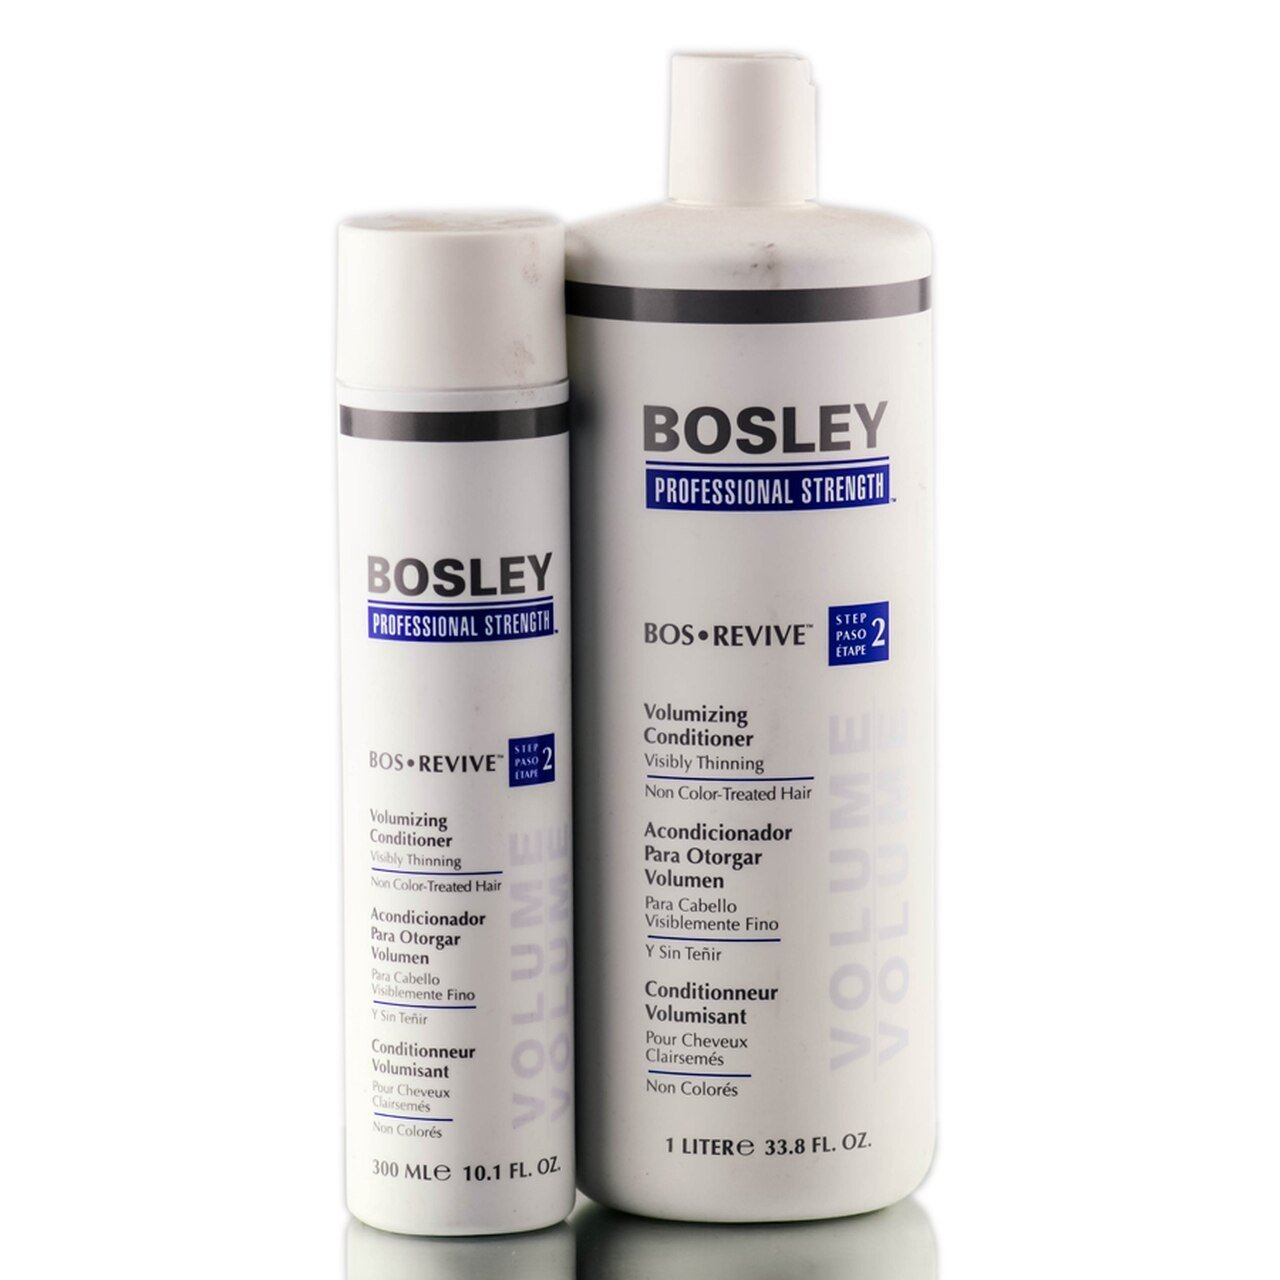 The Best Bosley Revive Volumizing Conditioner For Visibly Thinning Pictures